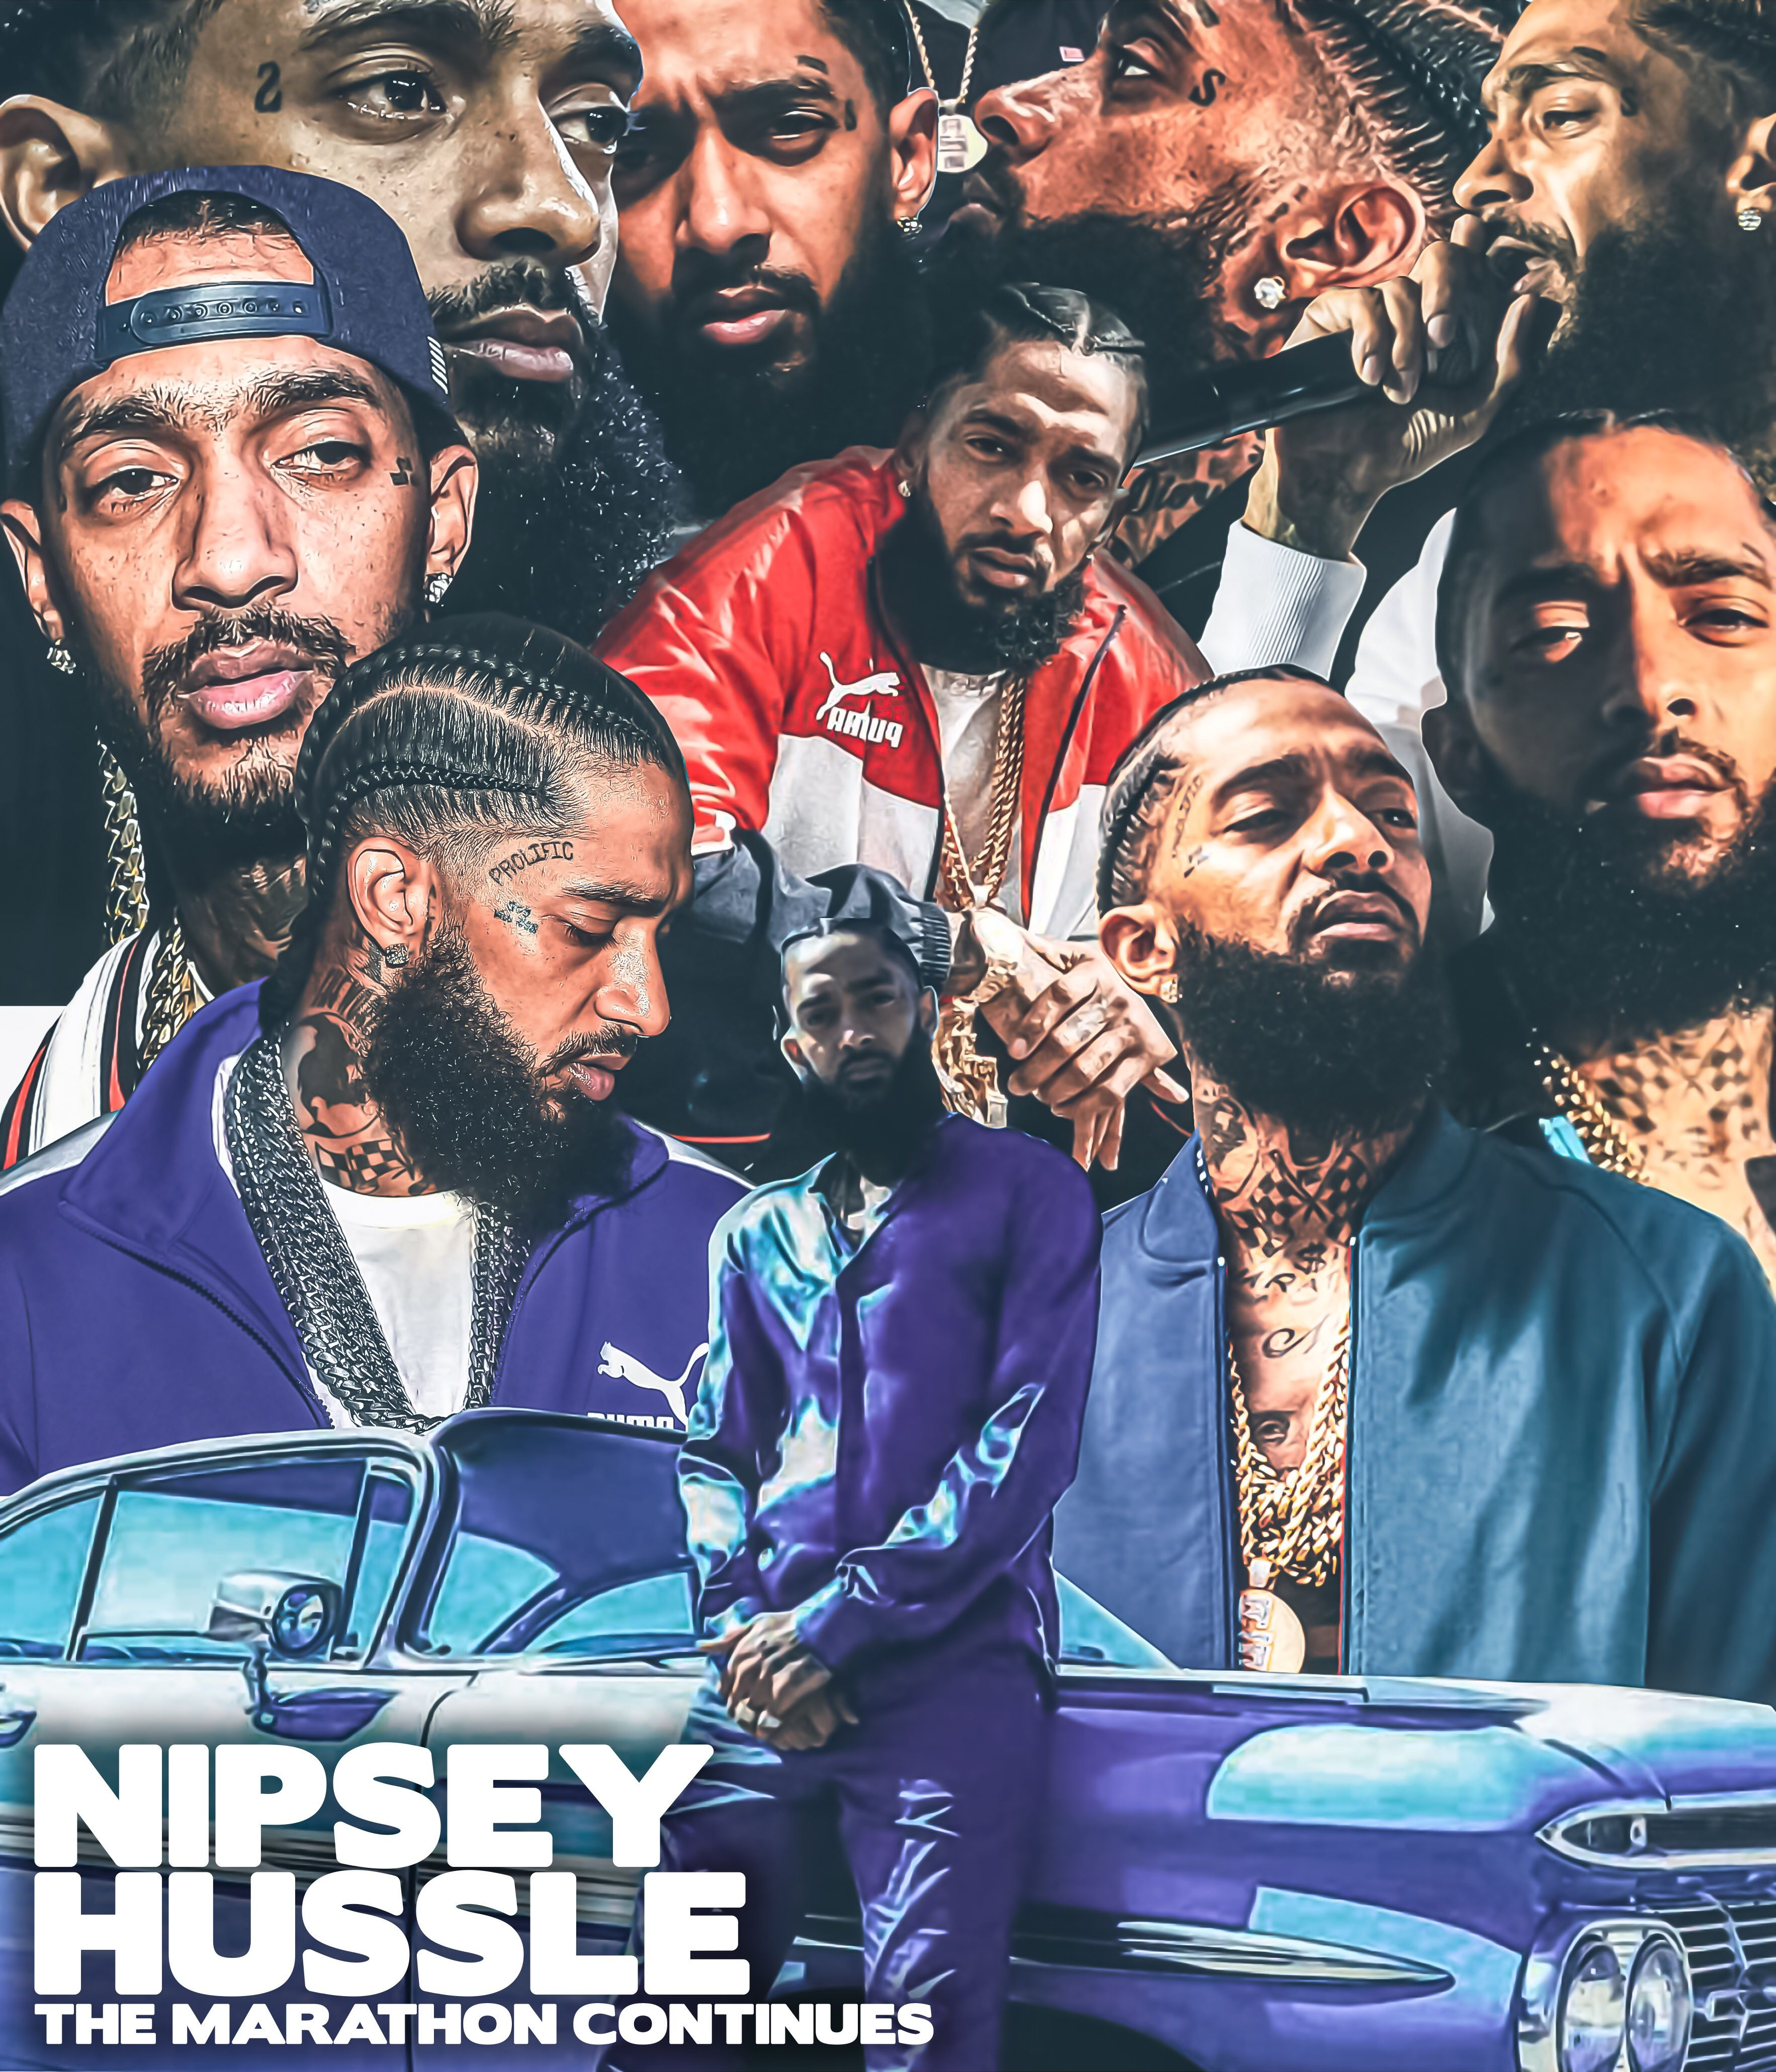 Nipsey Hussle Collage Cover artwork, Freelance graphic